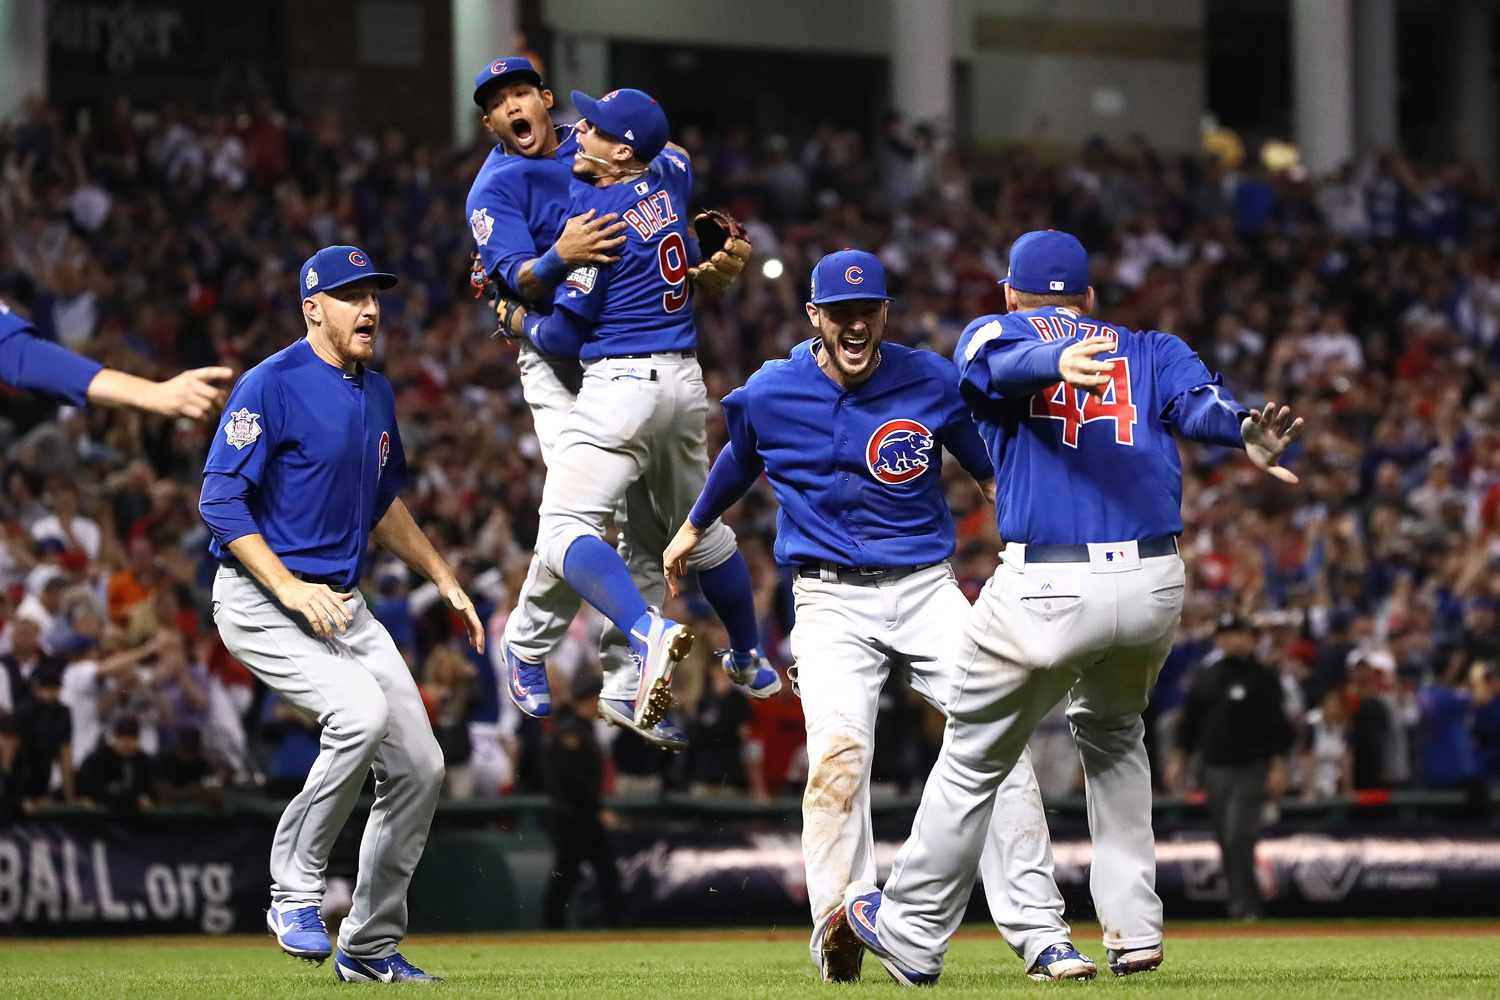 If You Want to Experience Pure Joy, Look at These Cubs Fans' Faces